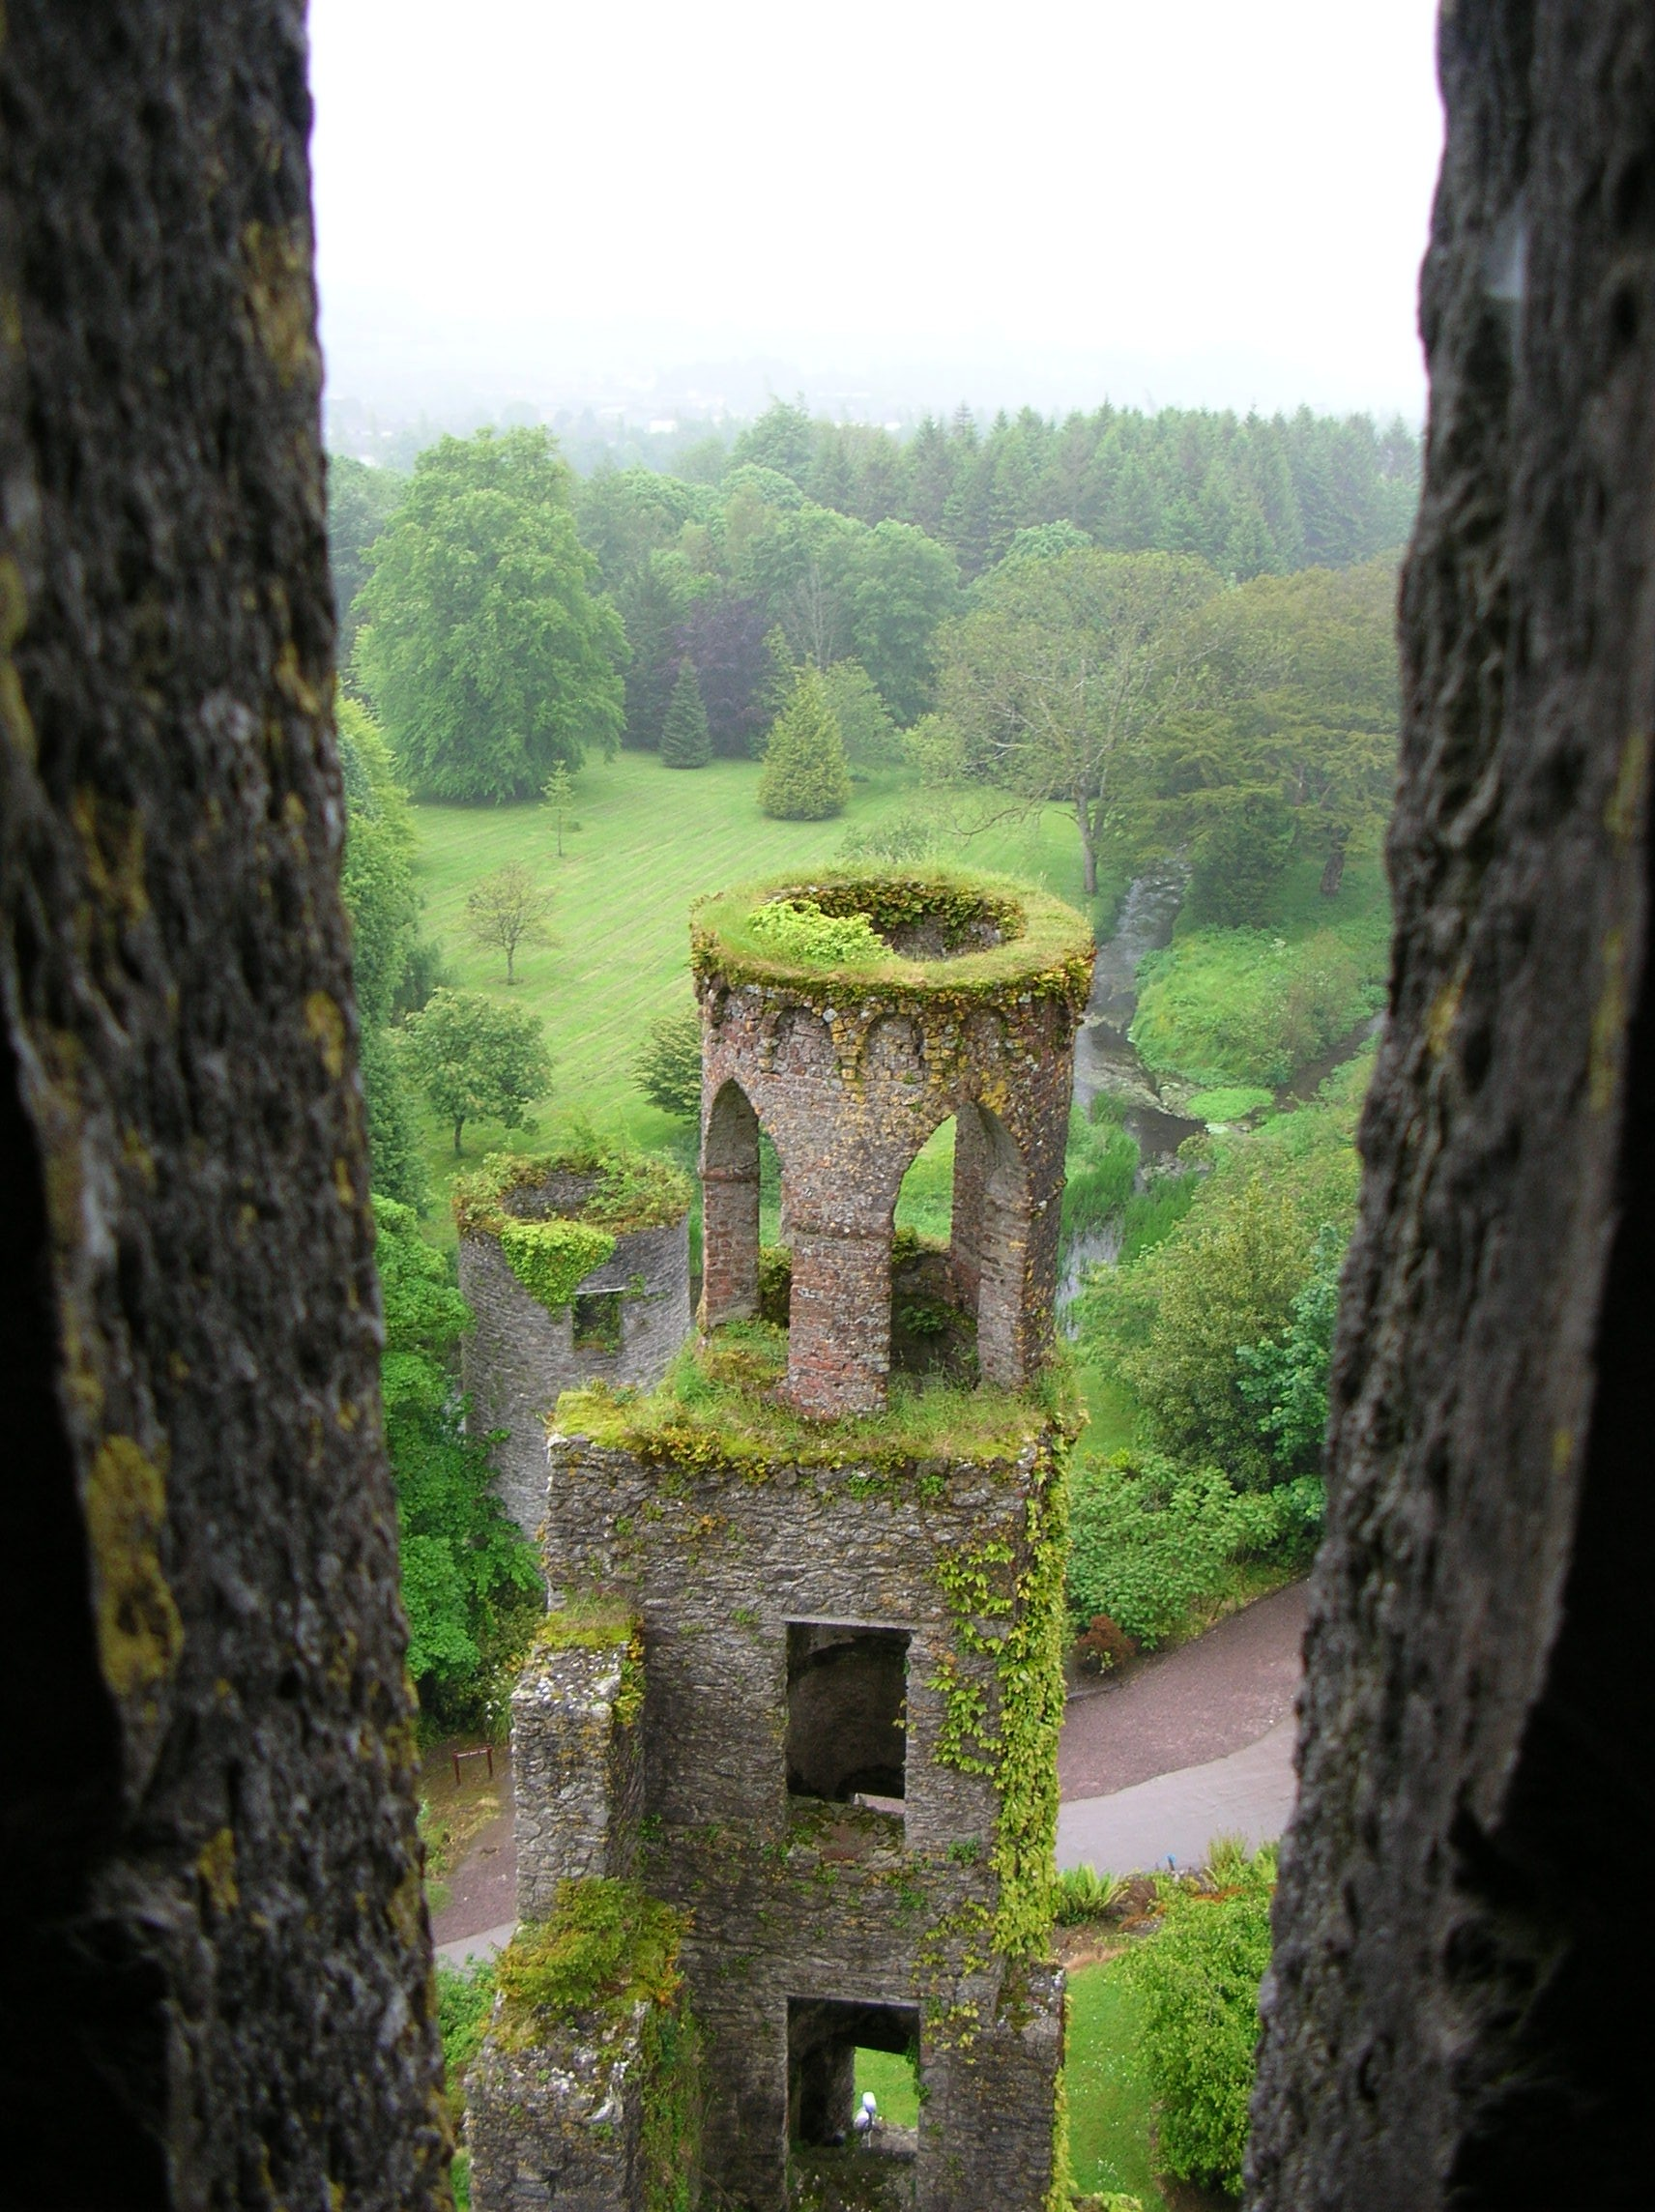 A view out of Blarney Castle on a moody day.